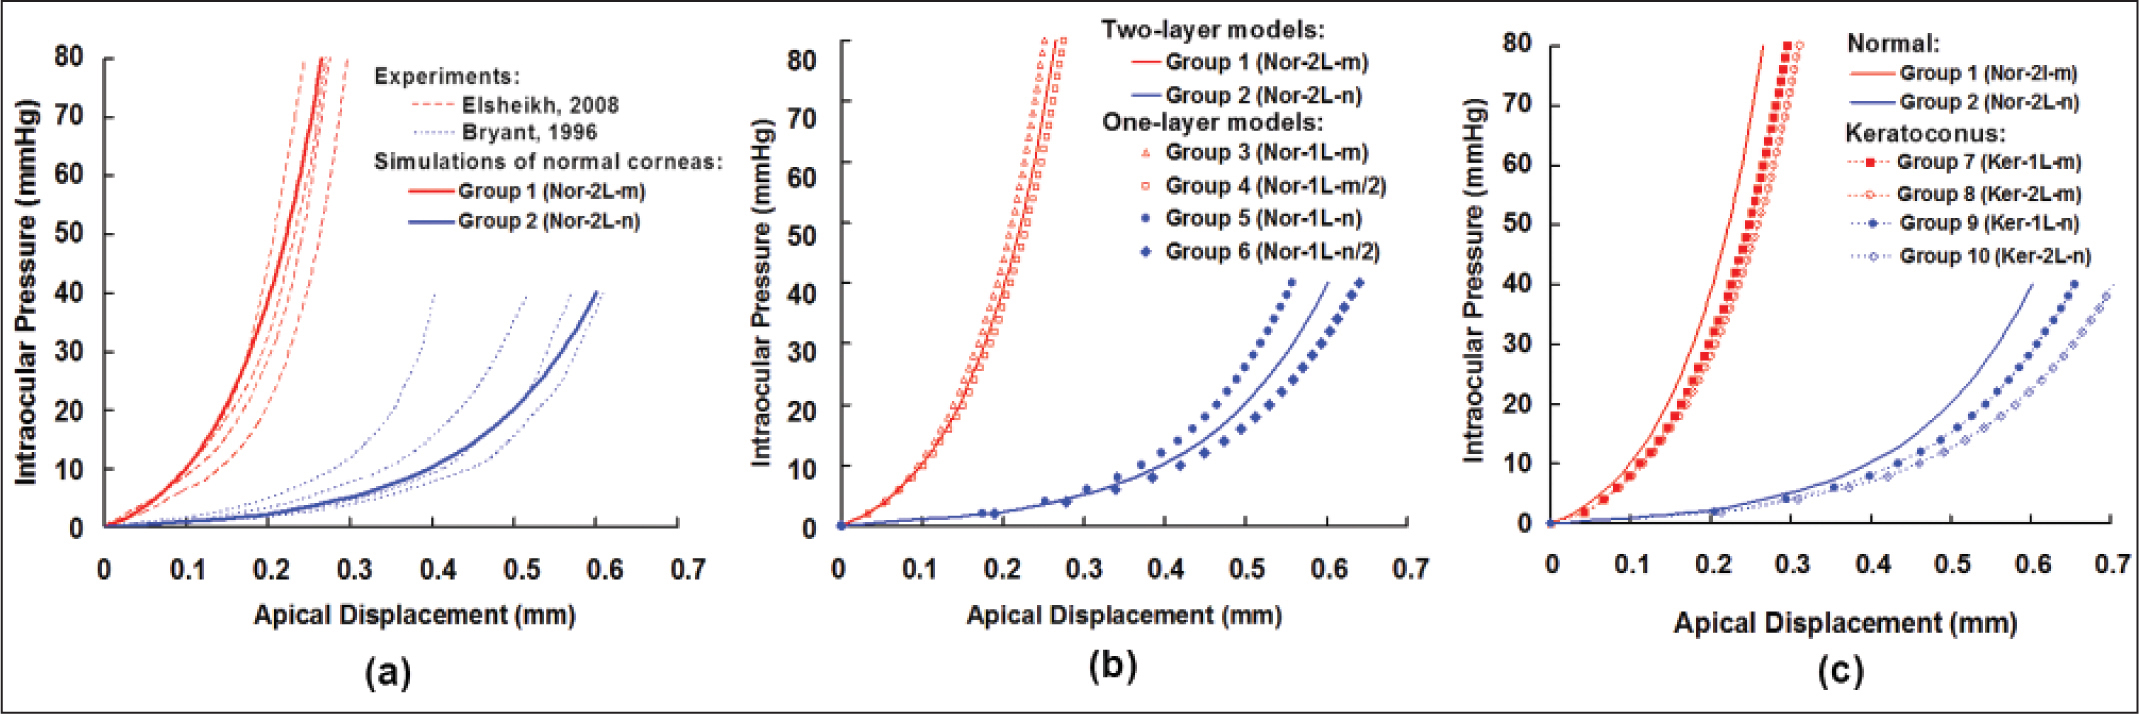 (A) The relationships between intraocular pressure (IOP) and apical displacement derived from experimental14,24 or simulated numerical data can be compared for normal corneas. (B) Simulated numerical comparisons of the one- and two-layer models. Groups 1 and 2 were two-layer models and groups 3 to 6 were one-layer models. (C) Simulated data for IOP versus apical displacement for normal and keratoconic corneas.